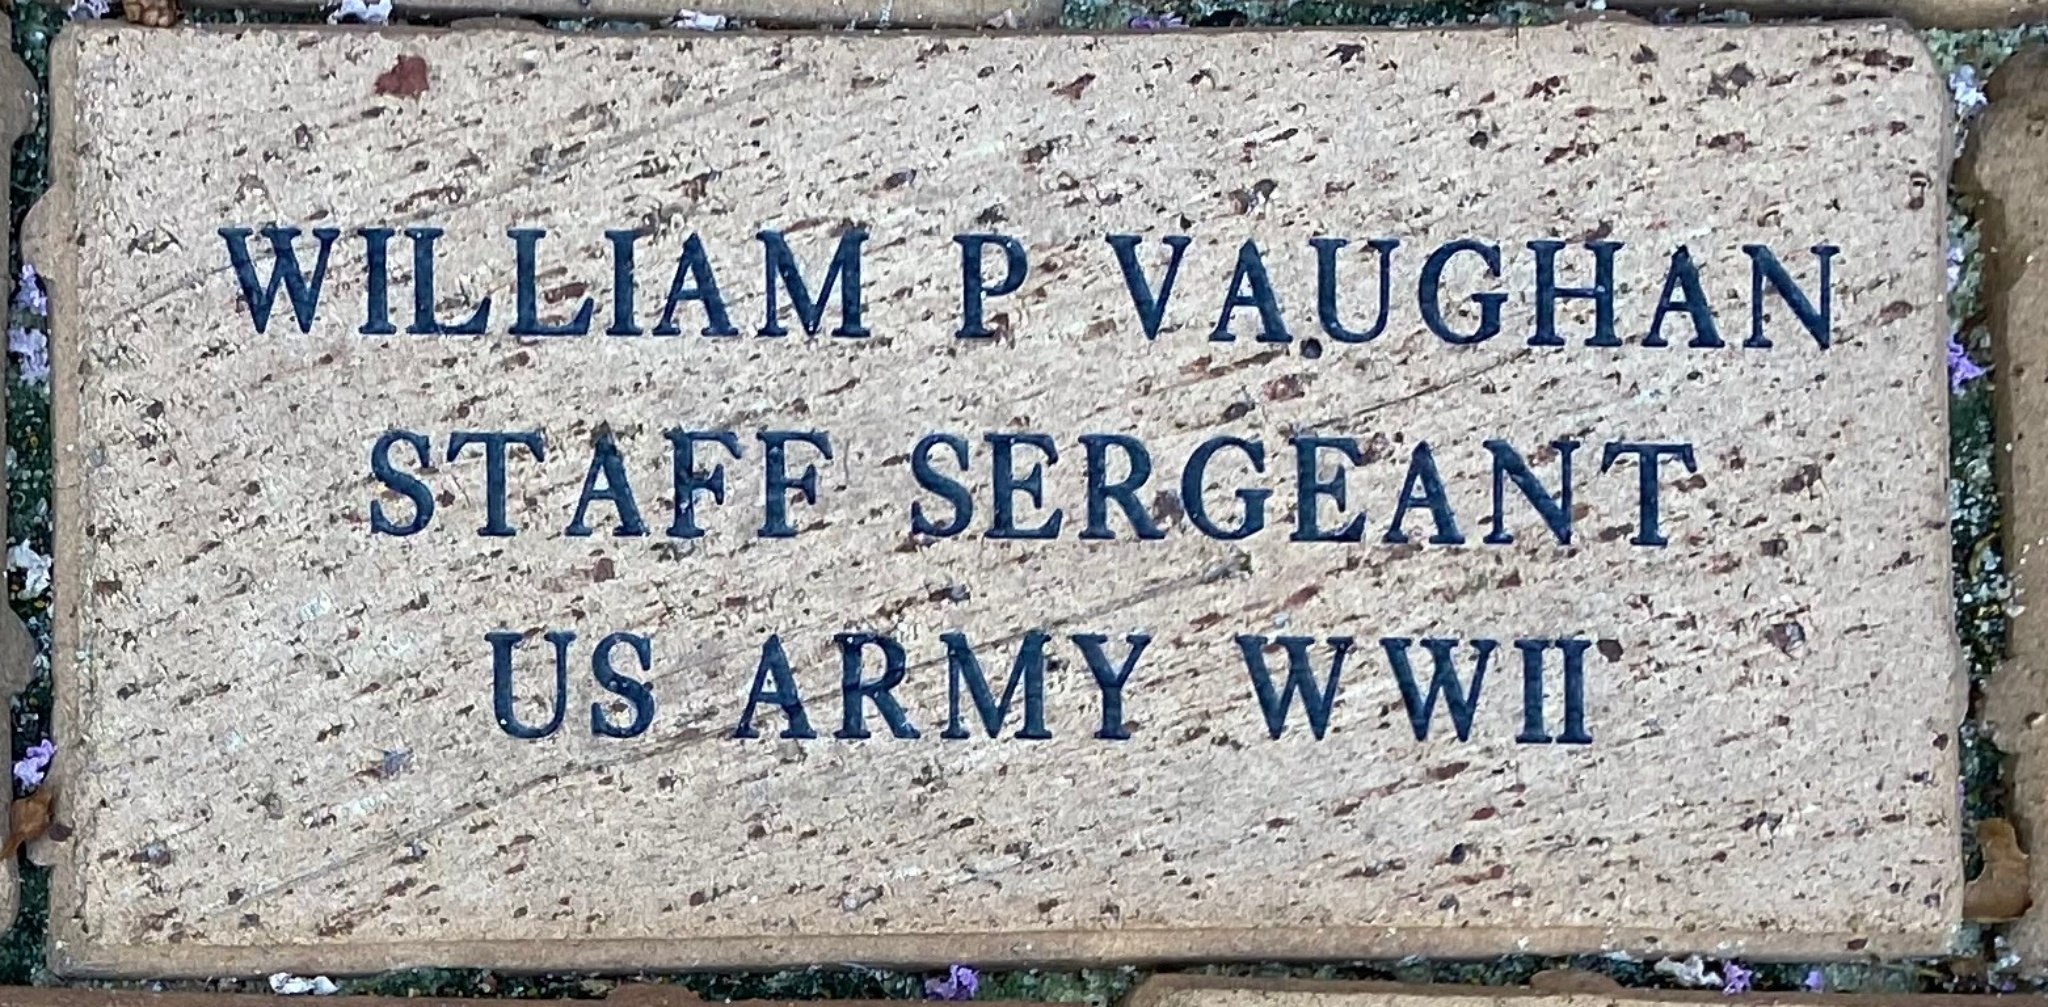 WILLIAM P VAUGHAN STAFF SERGEANT US ARMY WWII